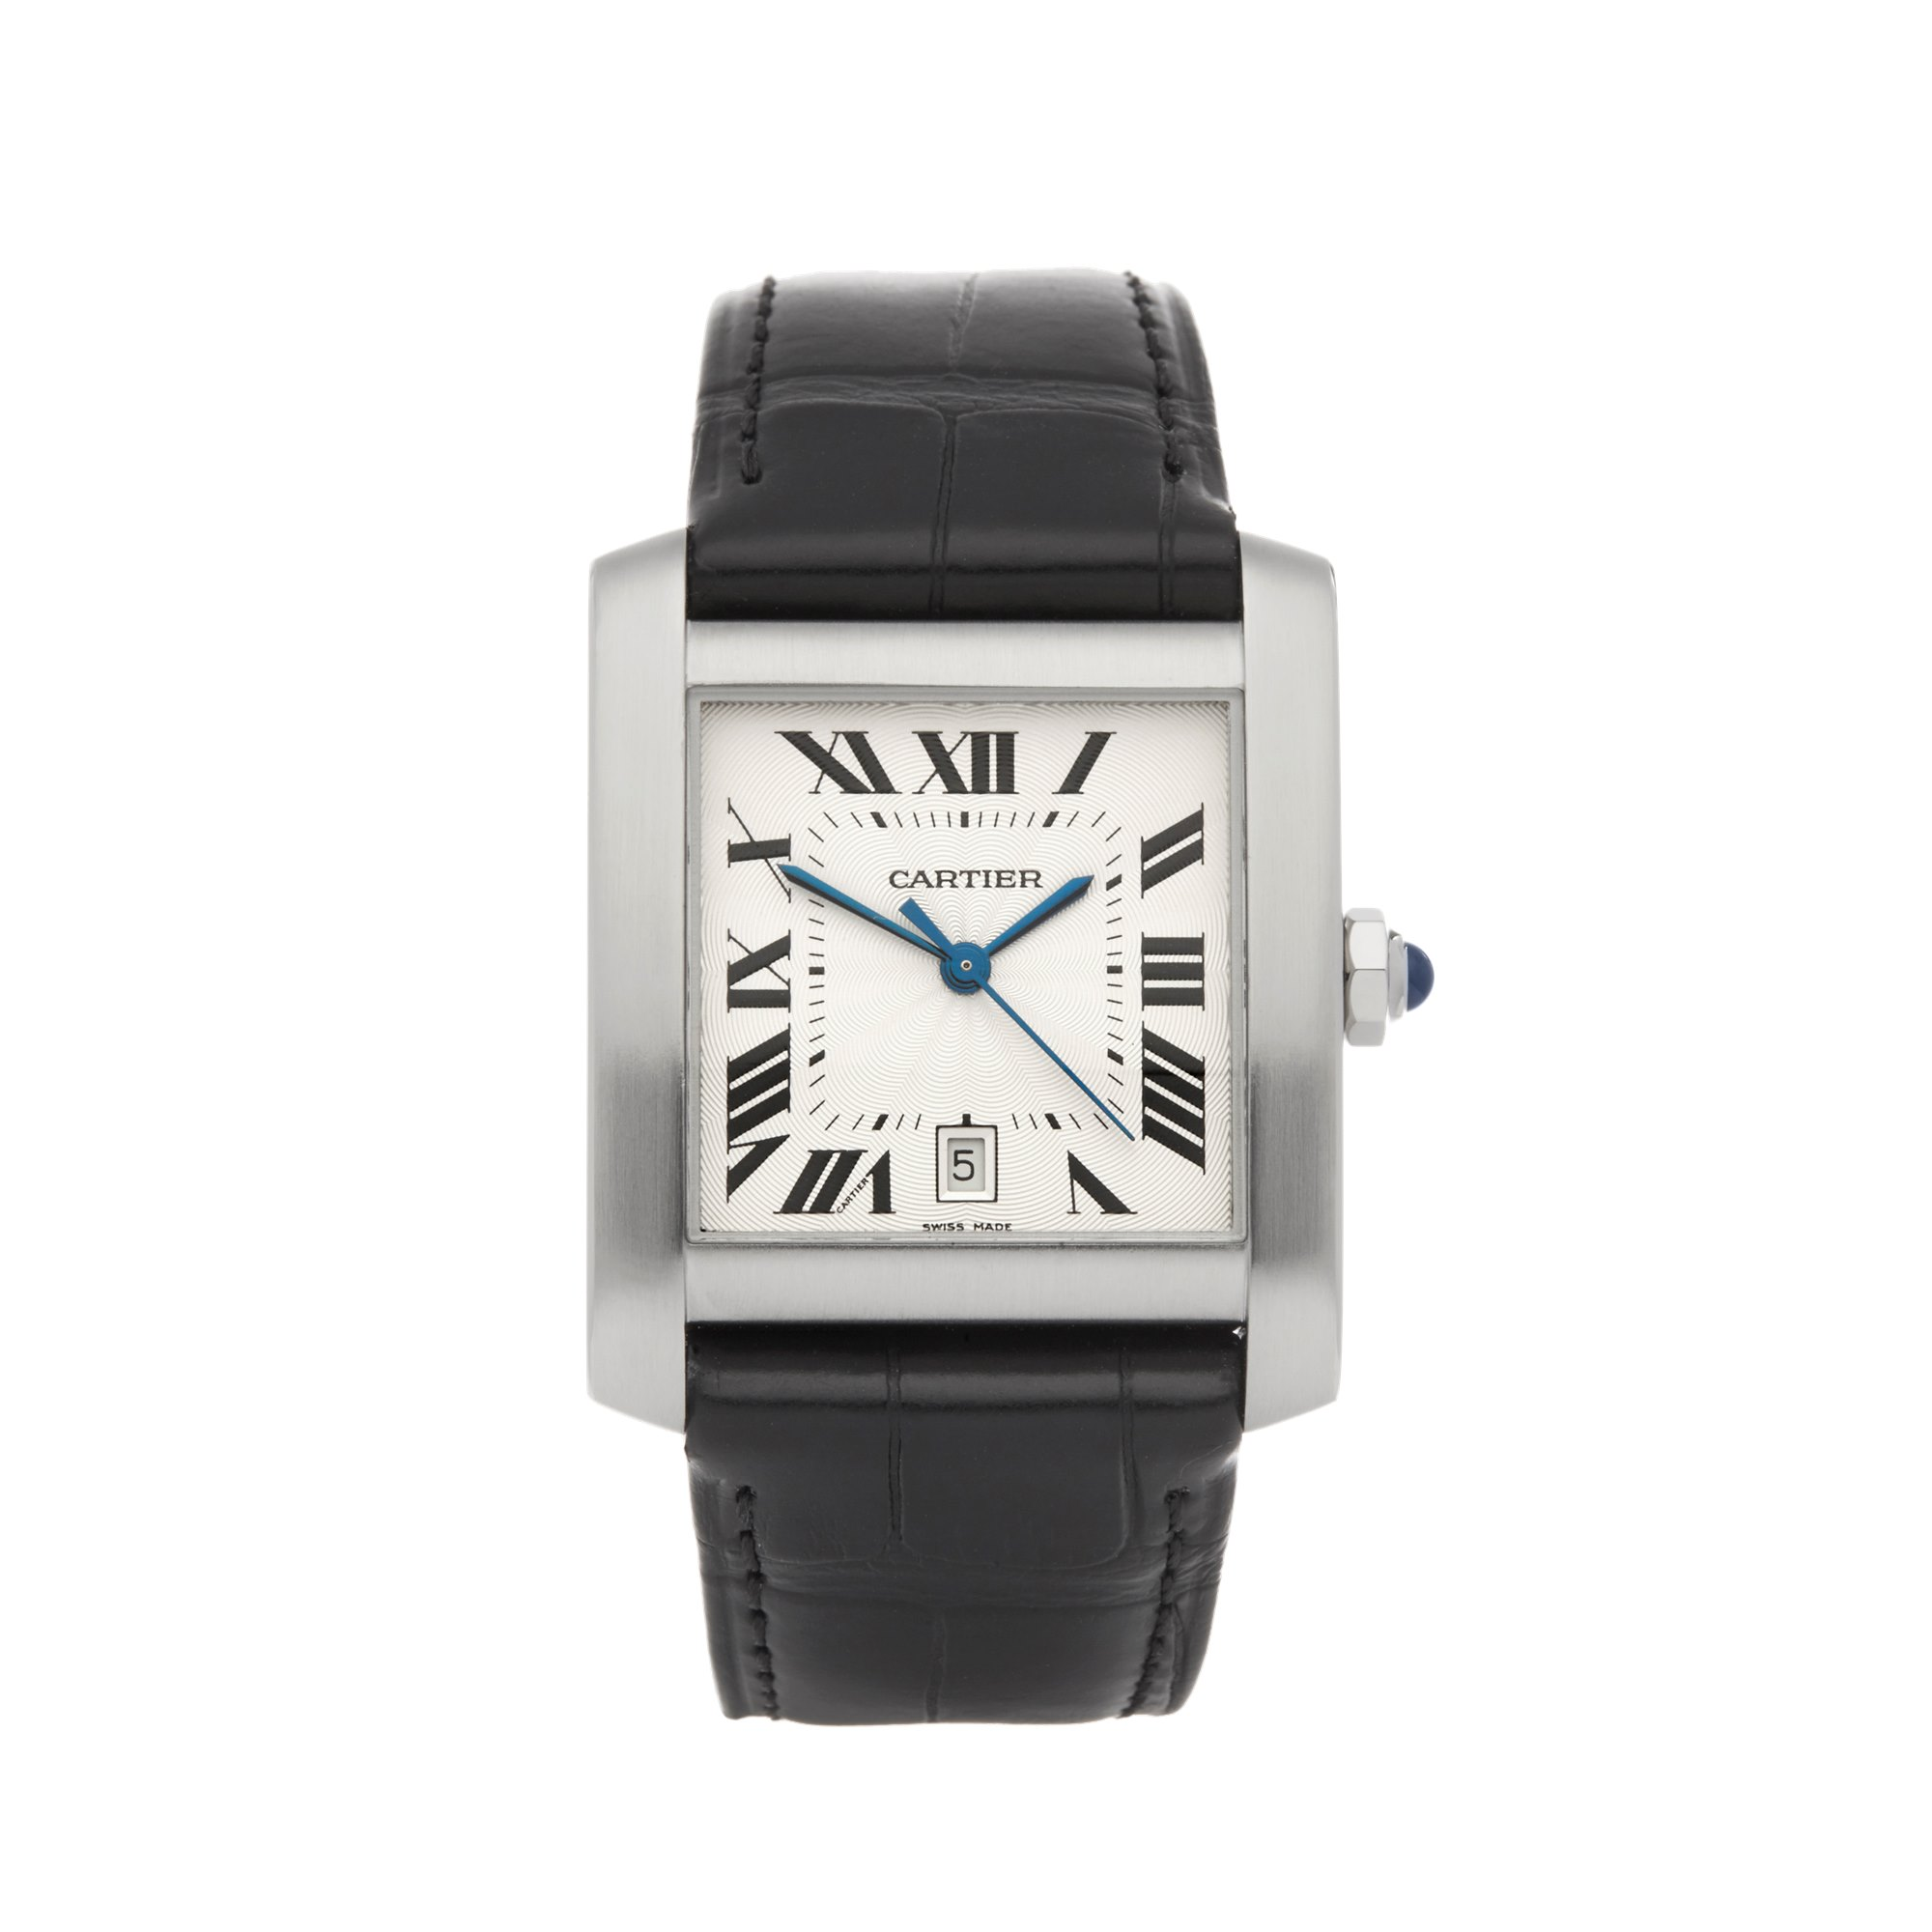 Cartier Tank Francaise 2564 or W5101755 Men Stainless Steel Watch - Image 2 of 7